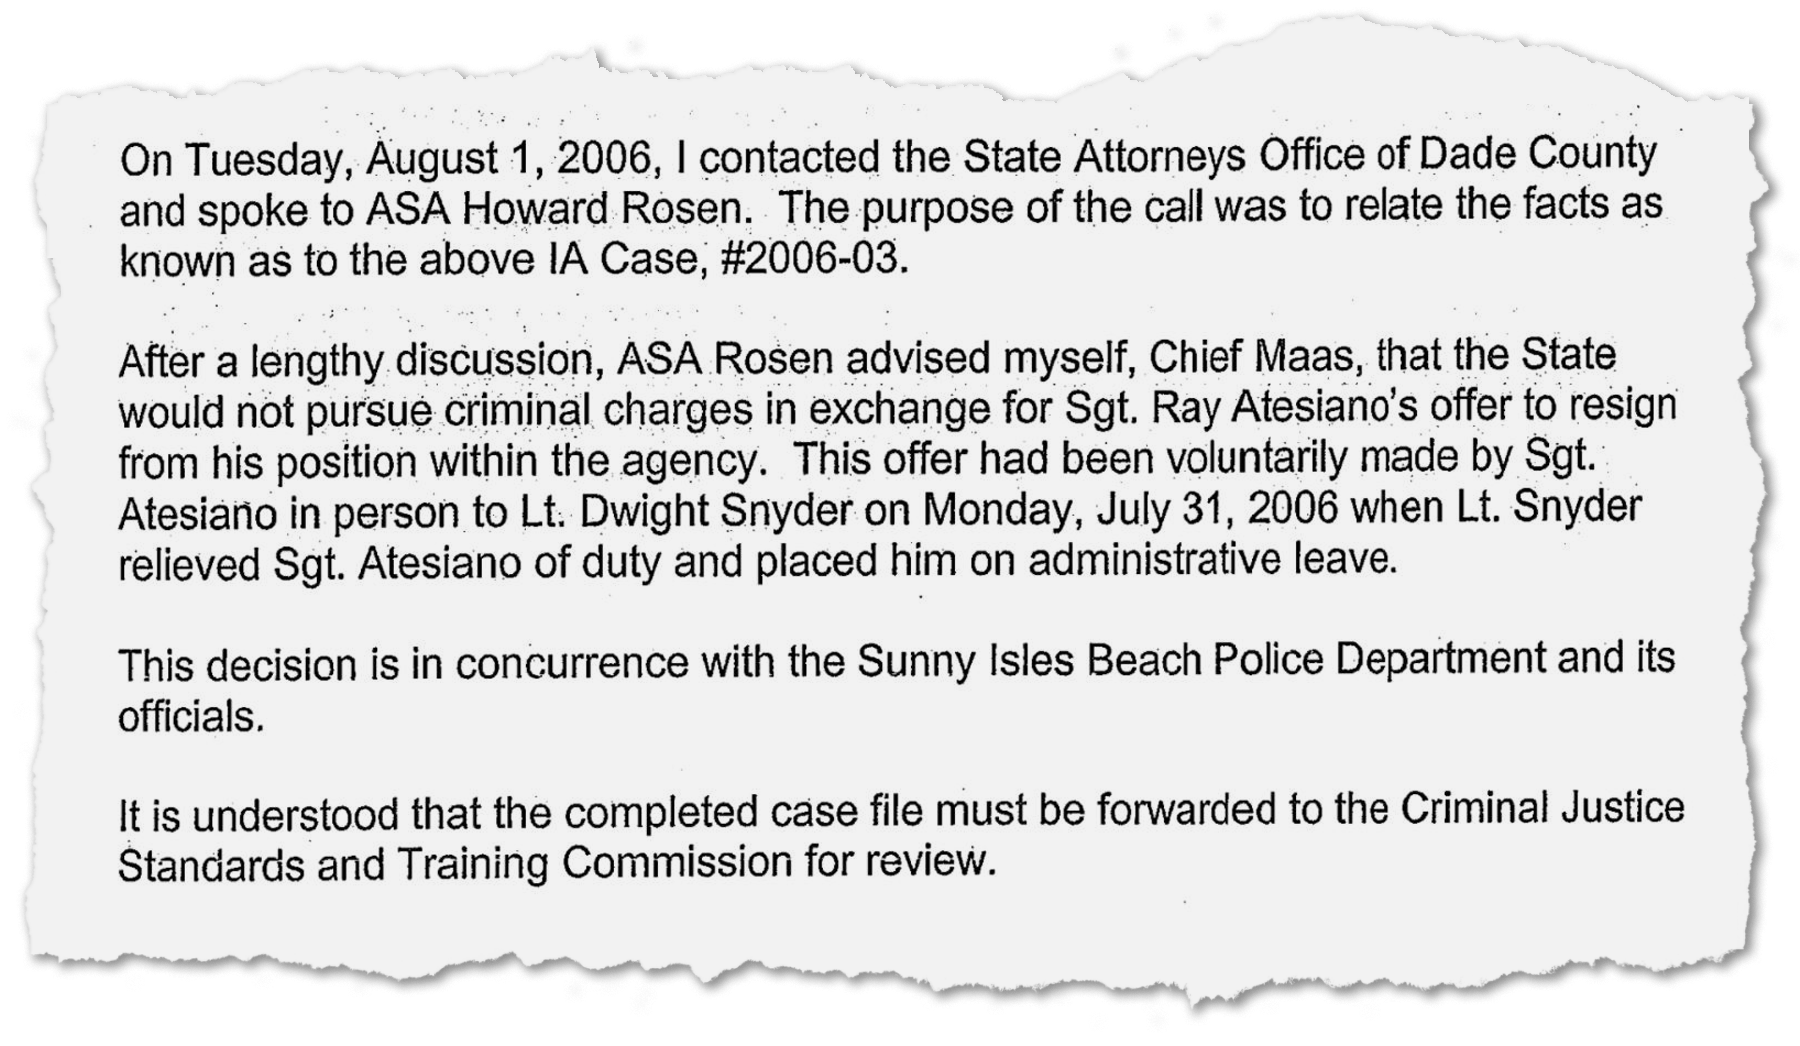 A Sunny Isles Police Department memo documents an agreement with Raimundo Atesiano in which he would resign in exchange for the state attorney's office not pursuing criminal charges against him for forgery.